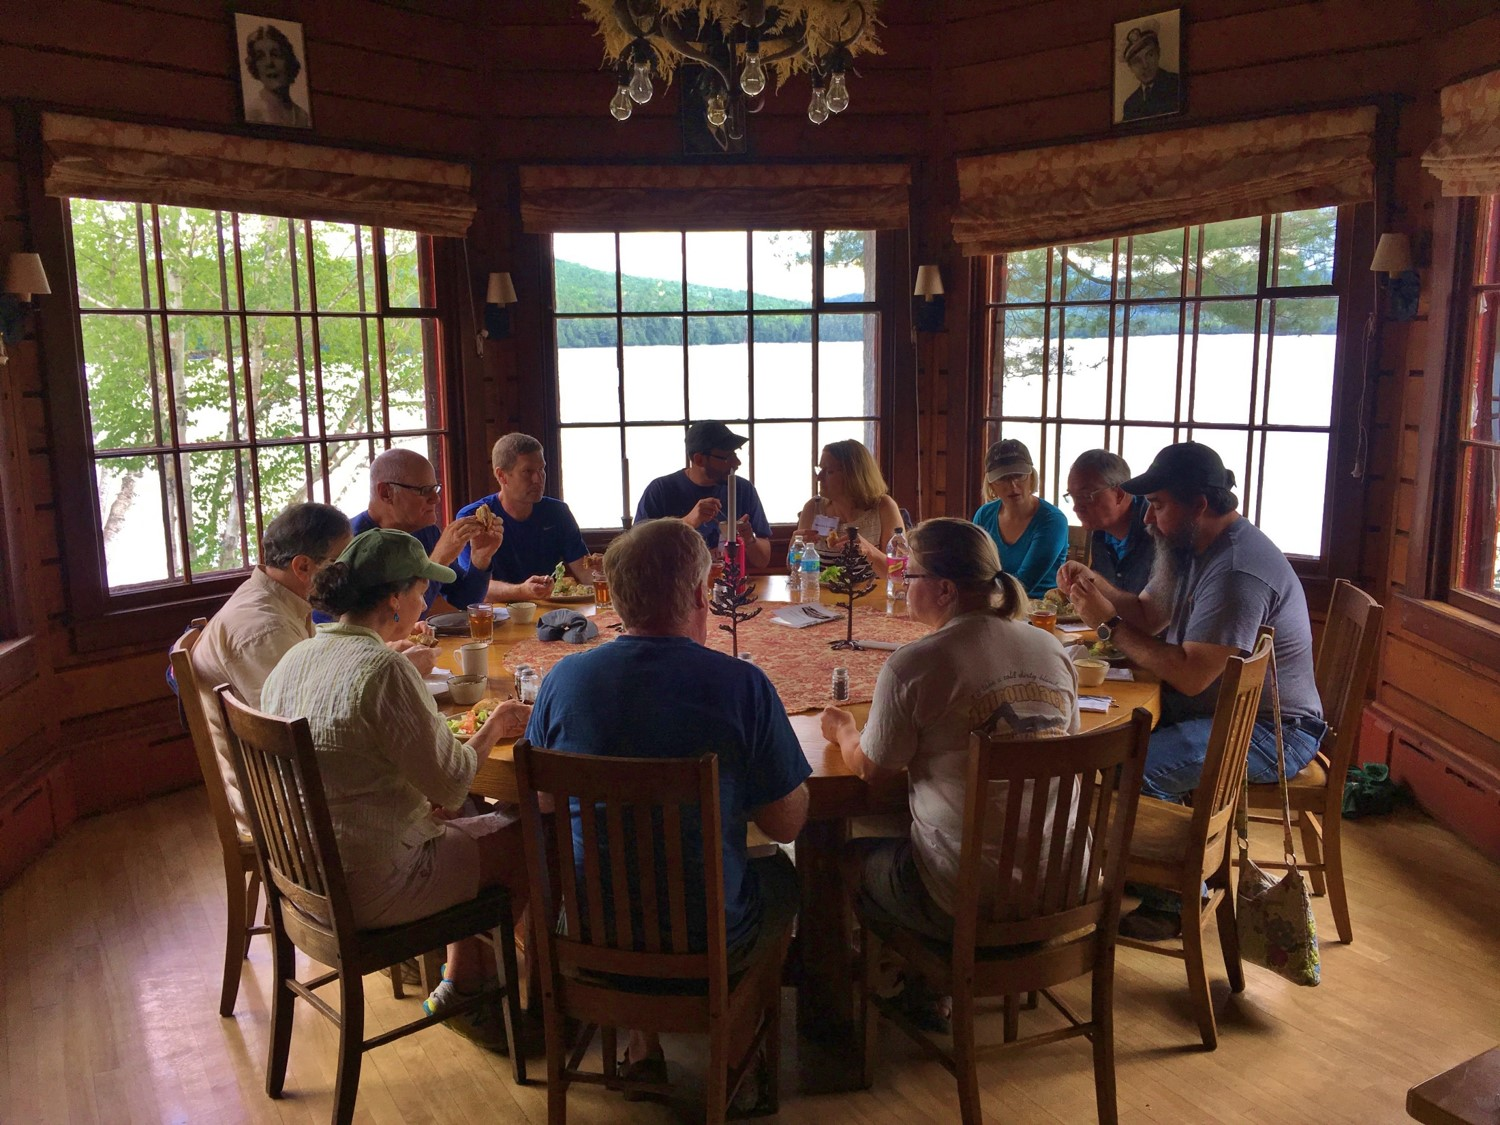 People eating at round table in Dining Room.jpg